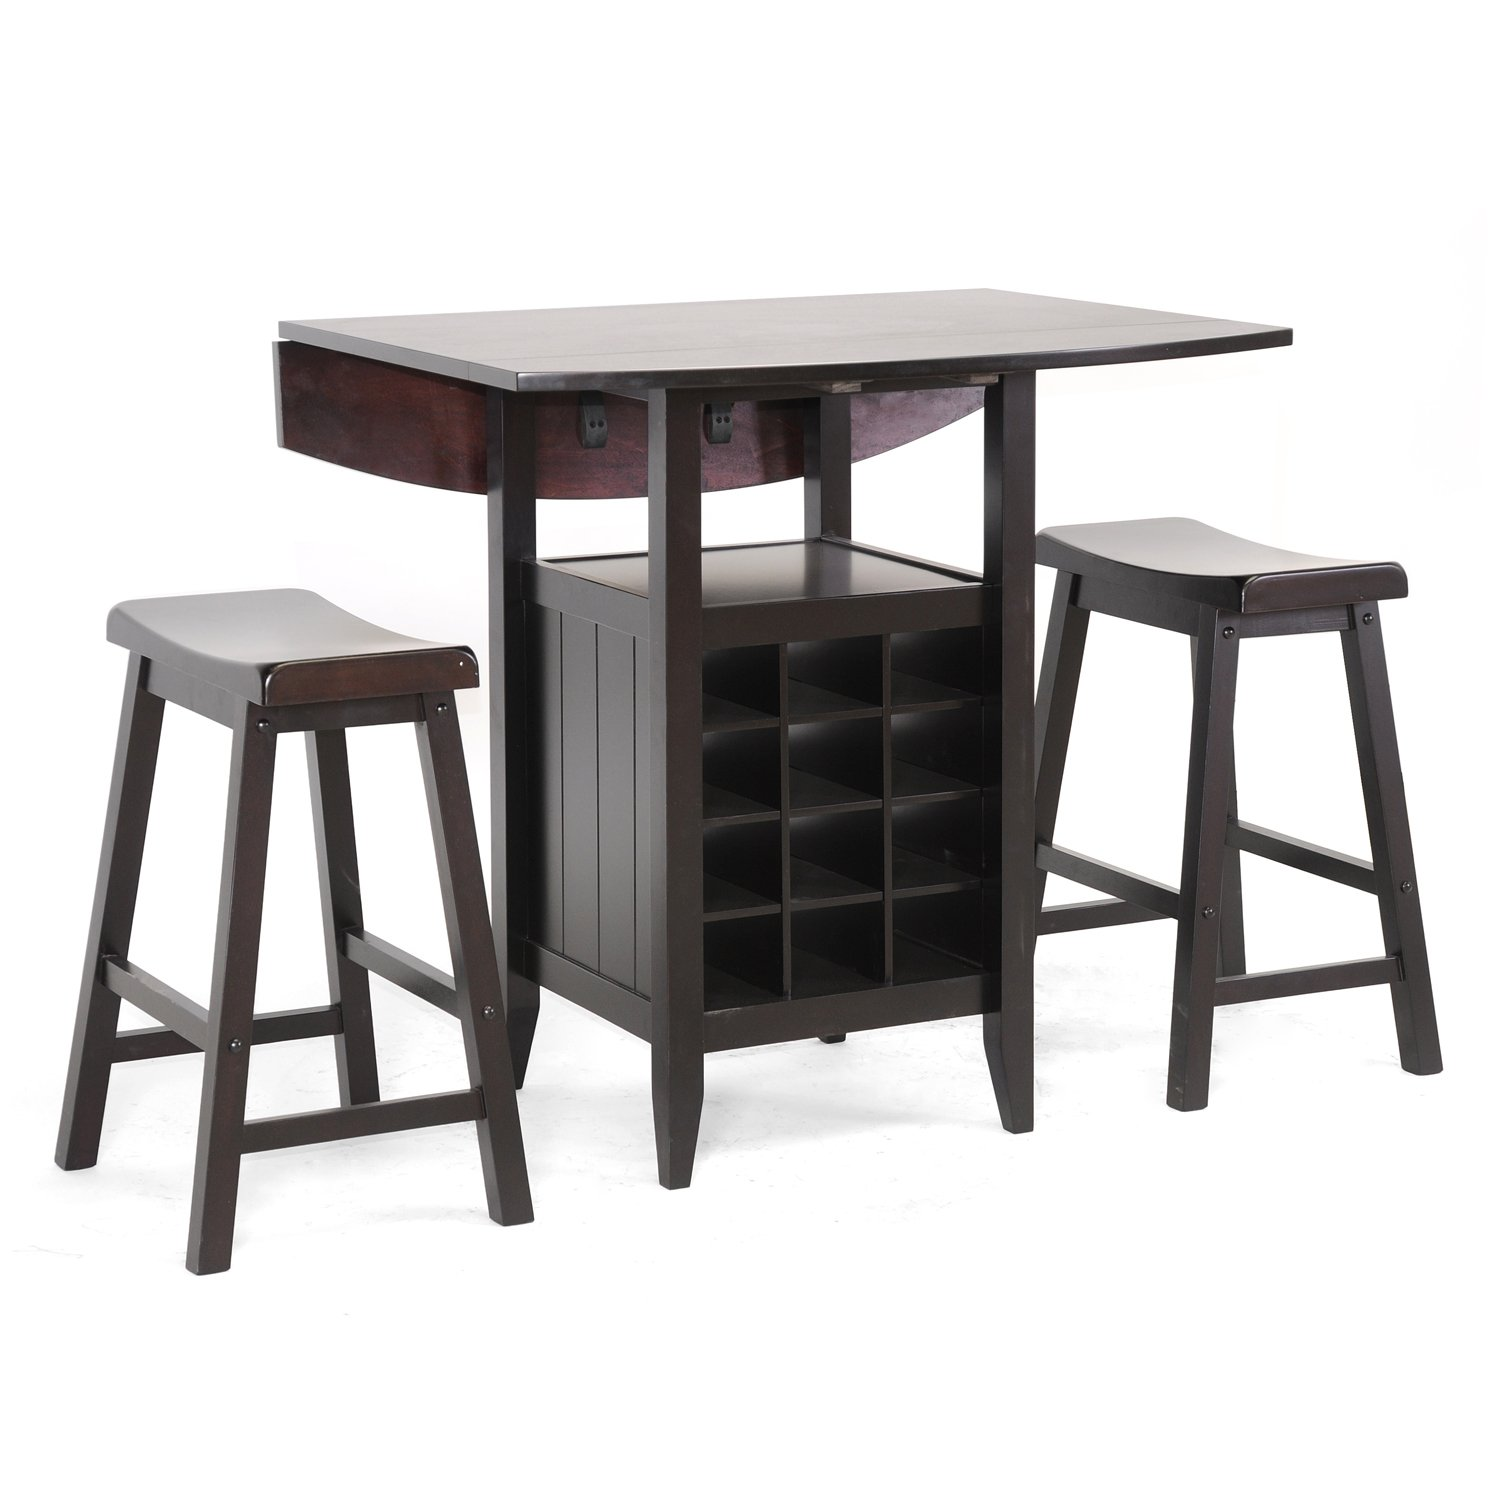 Baxton Studio 3-Piece Reynolds Black Wood Modern Drop-Leaf Pub Set with Wine Rack